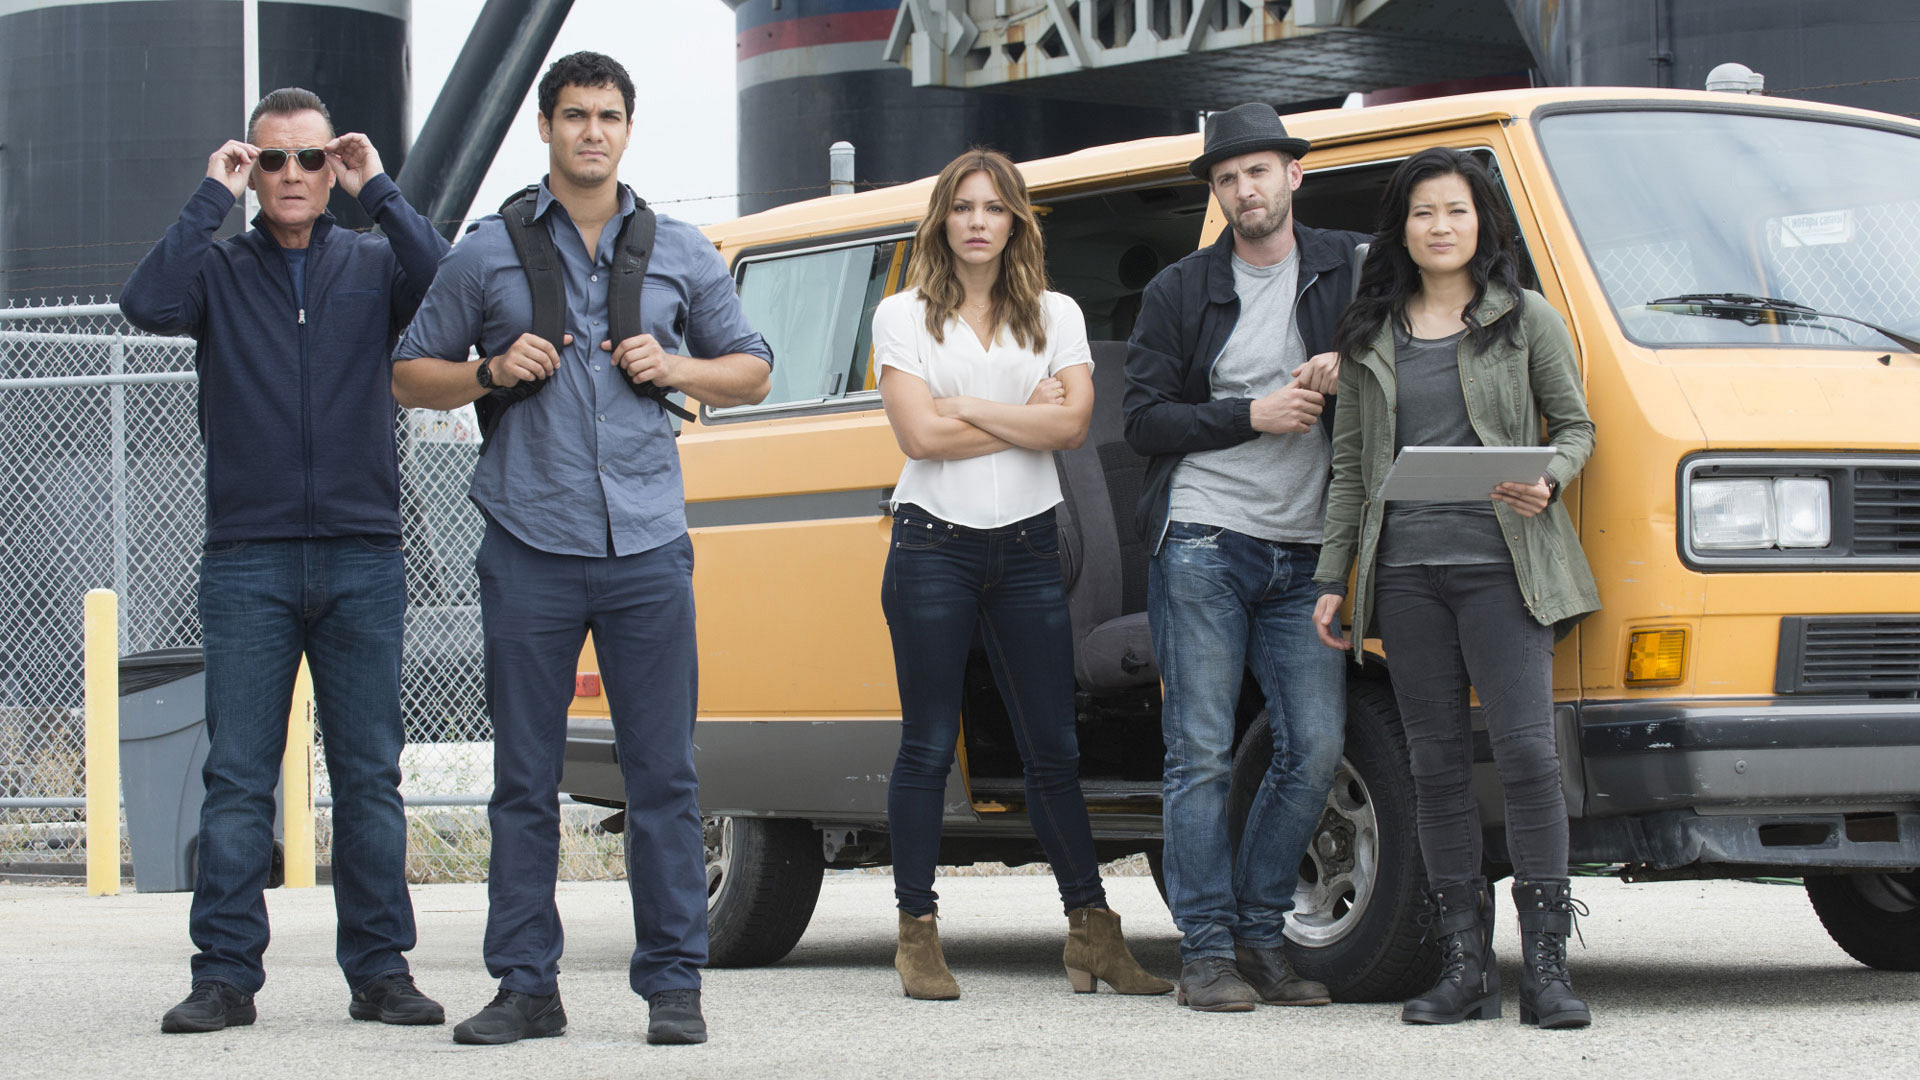 Robert Patrick as Cabe Gallo, Elyes Gabel as Walter O'Brien, Katharine McPhee as Paige Dineen, Eddie Kaye Thomas as Toby Curtis, and Jadyn Wong as Happy Quinn